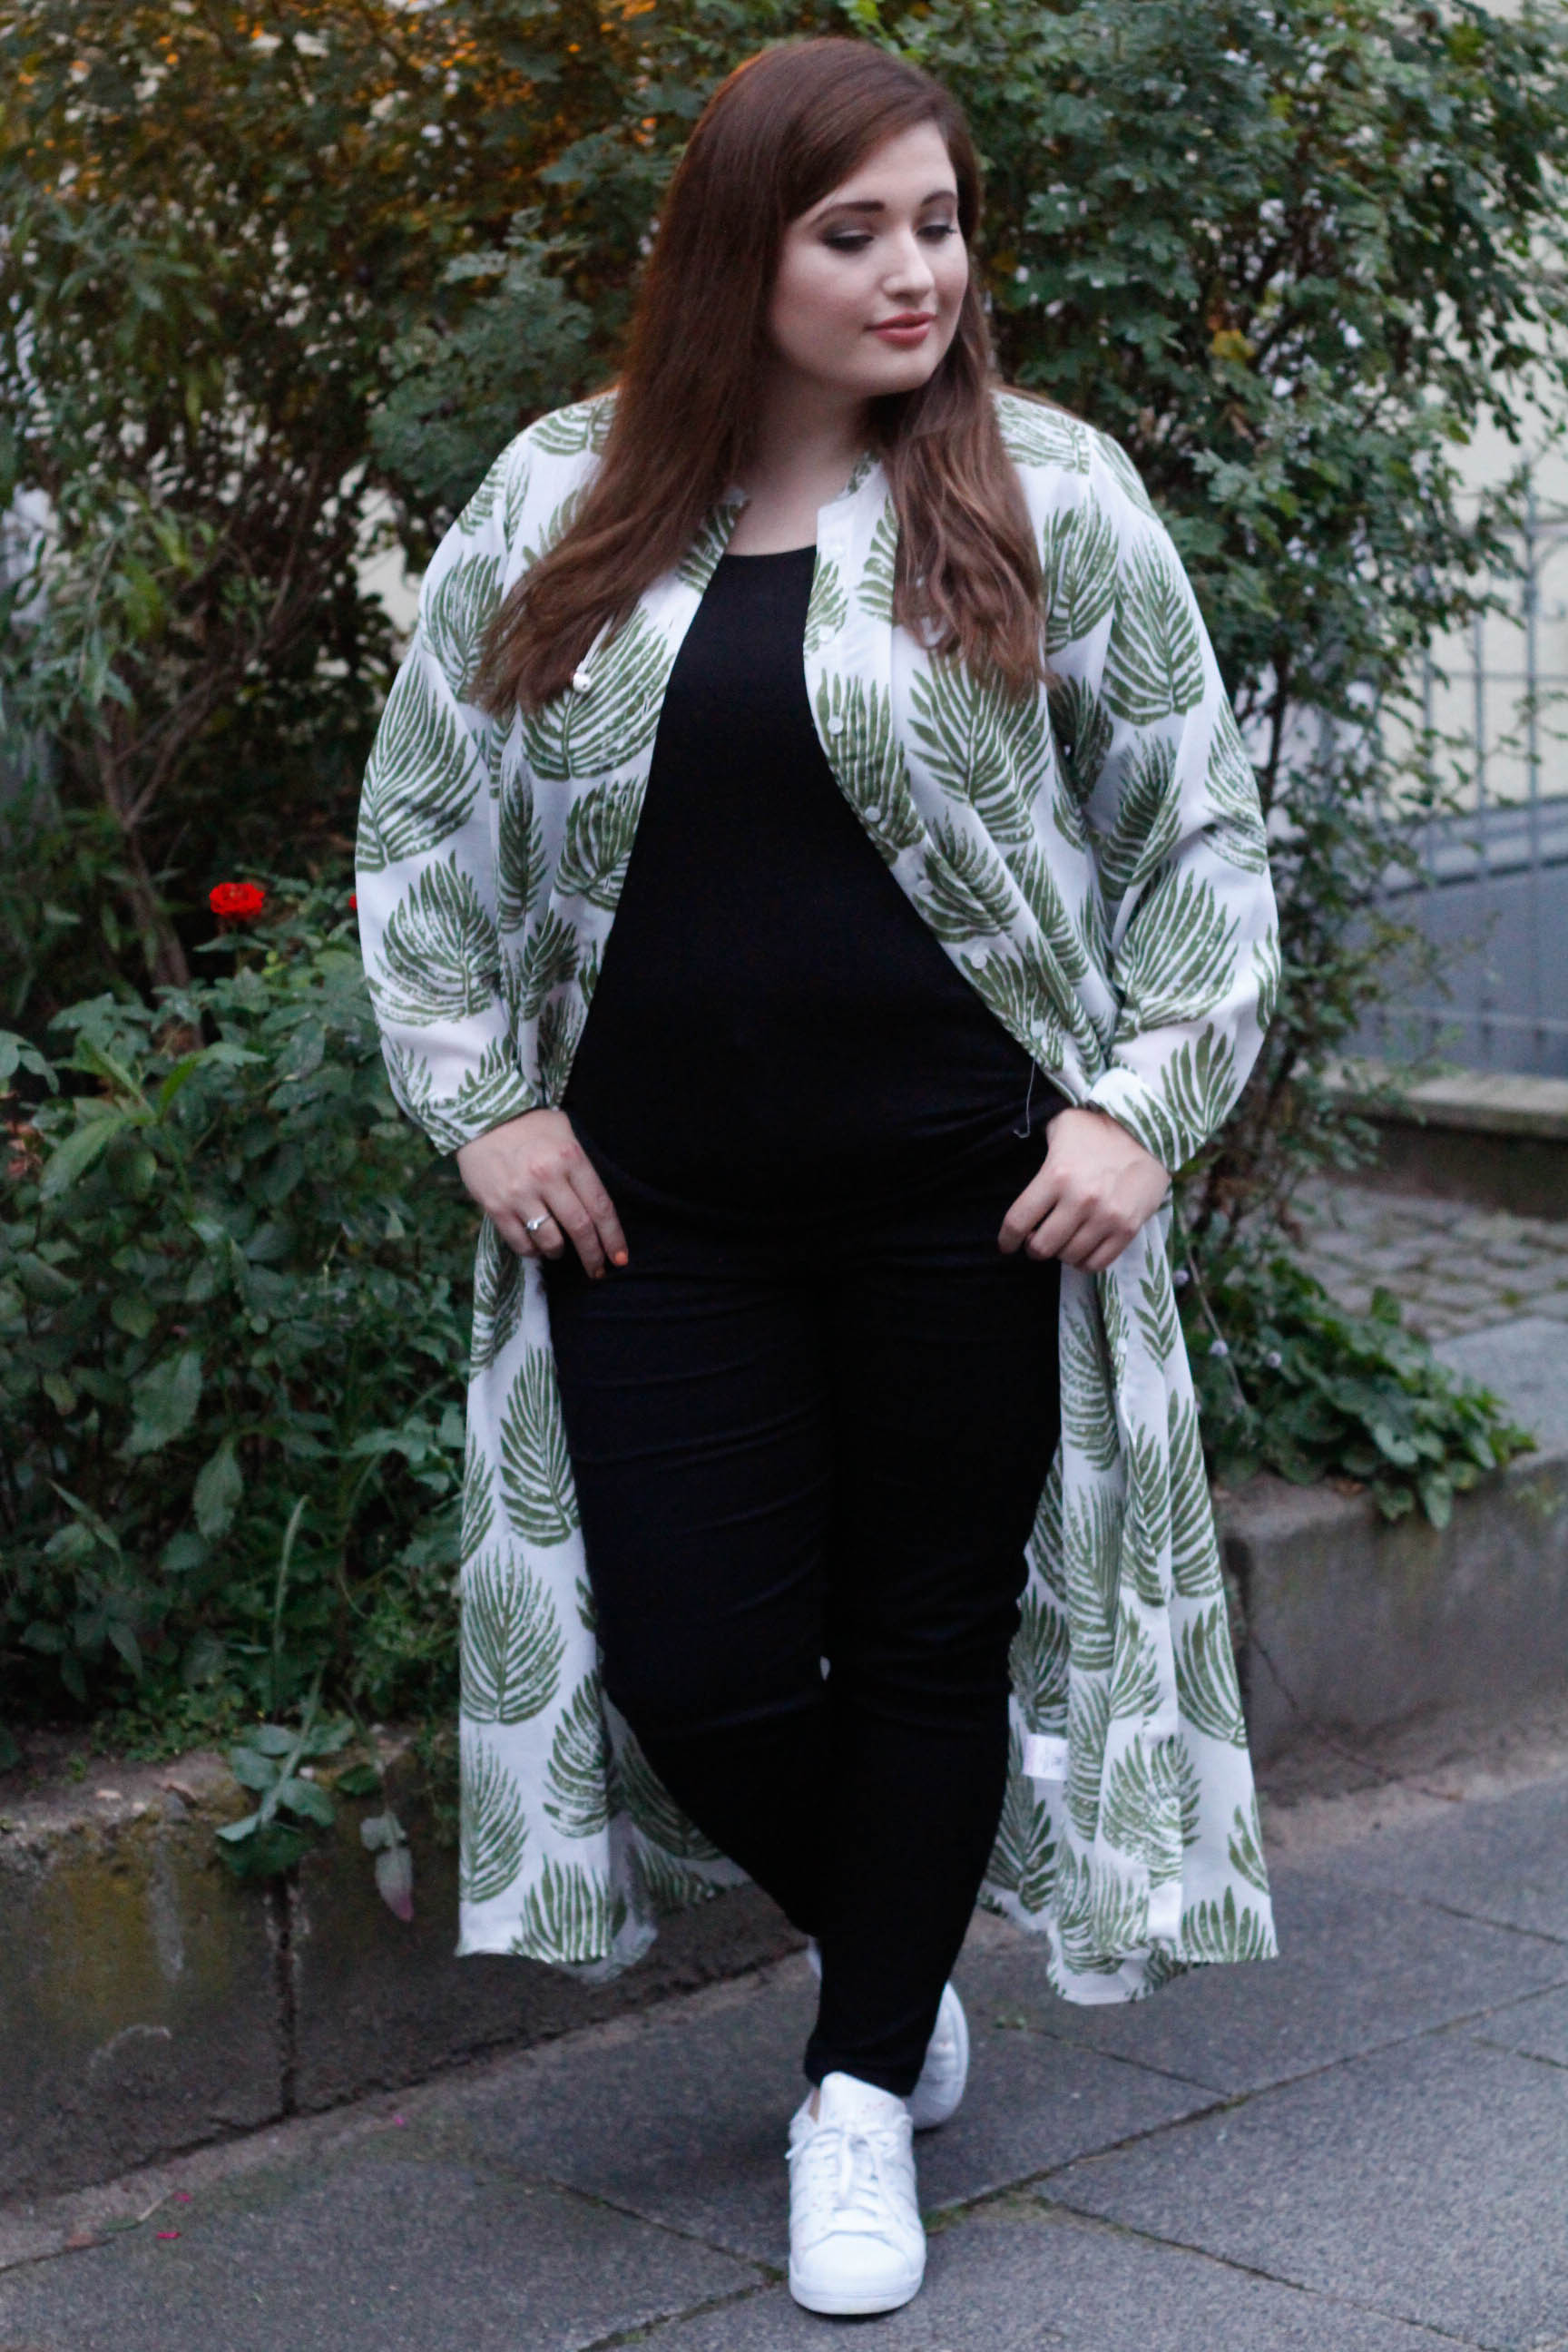 Plus Size Model Maxidress mit Tropenmuster